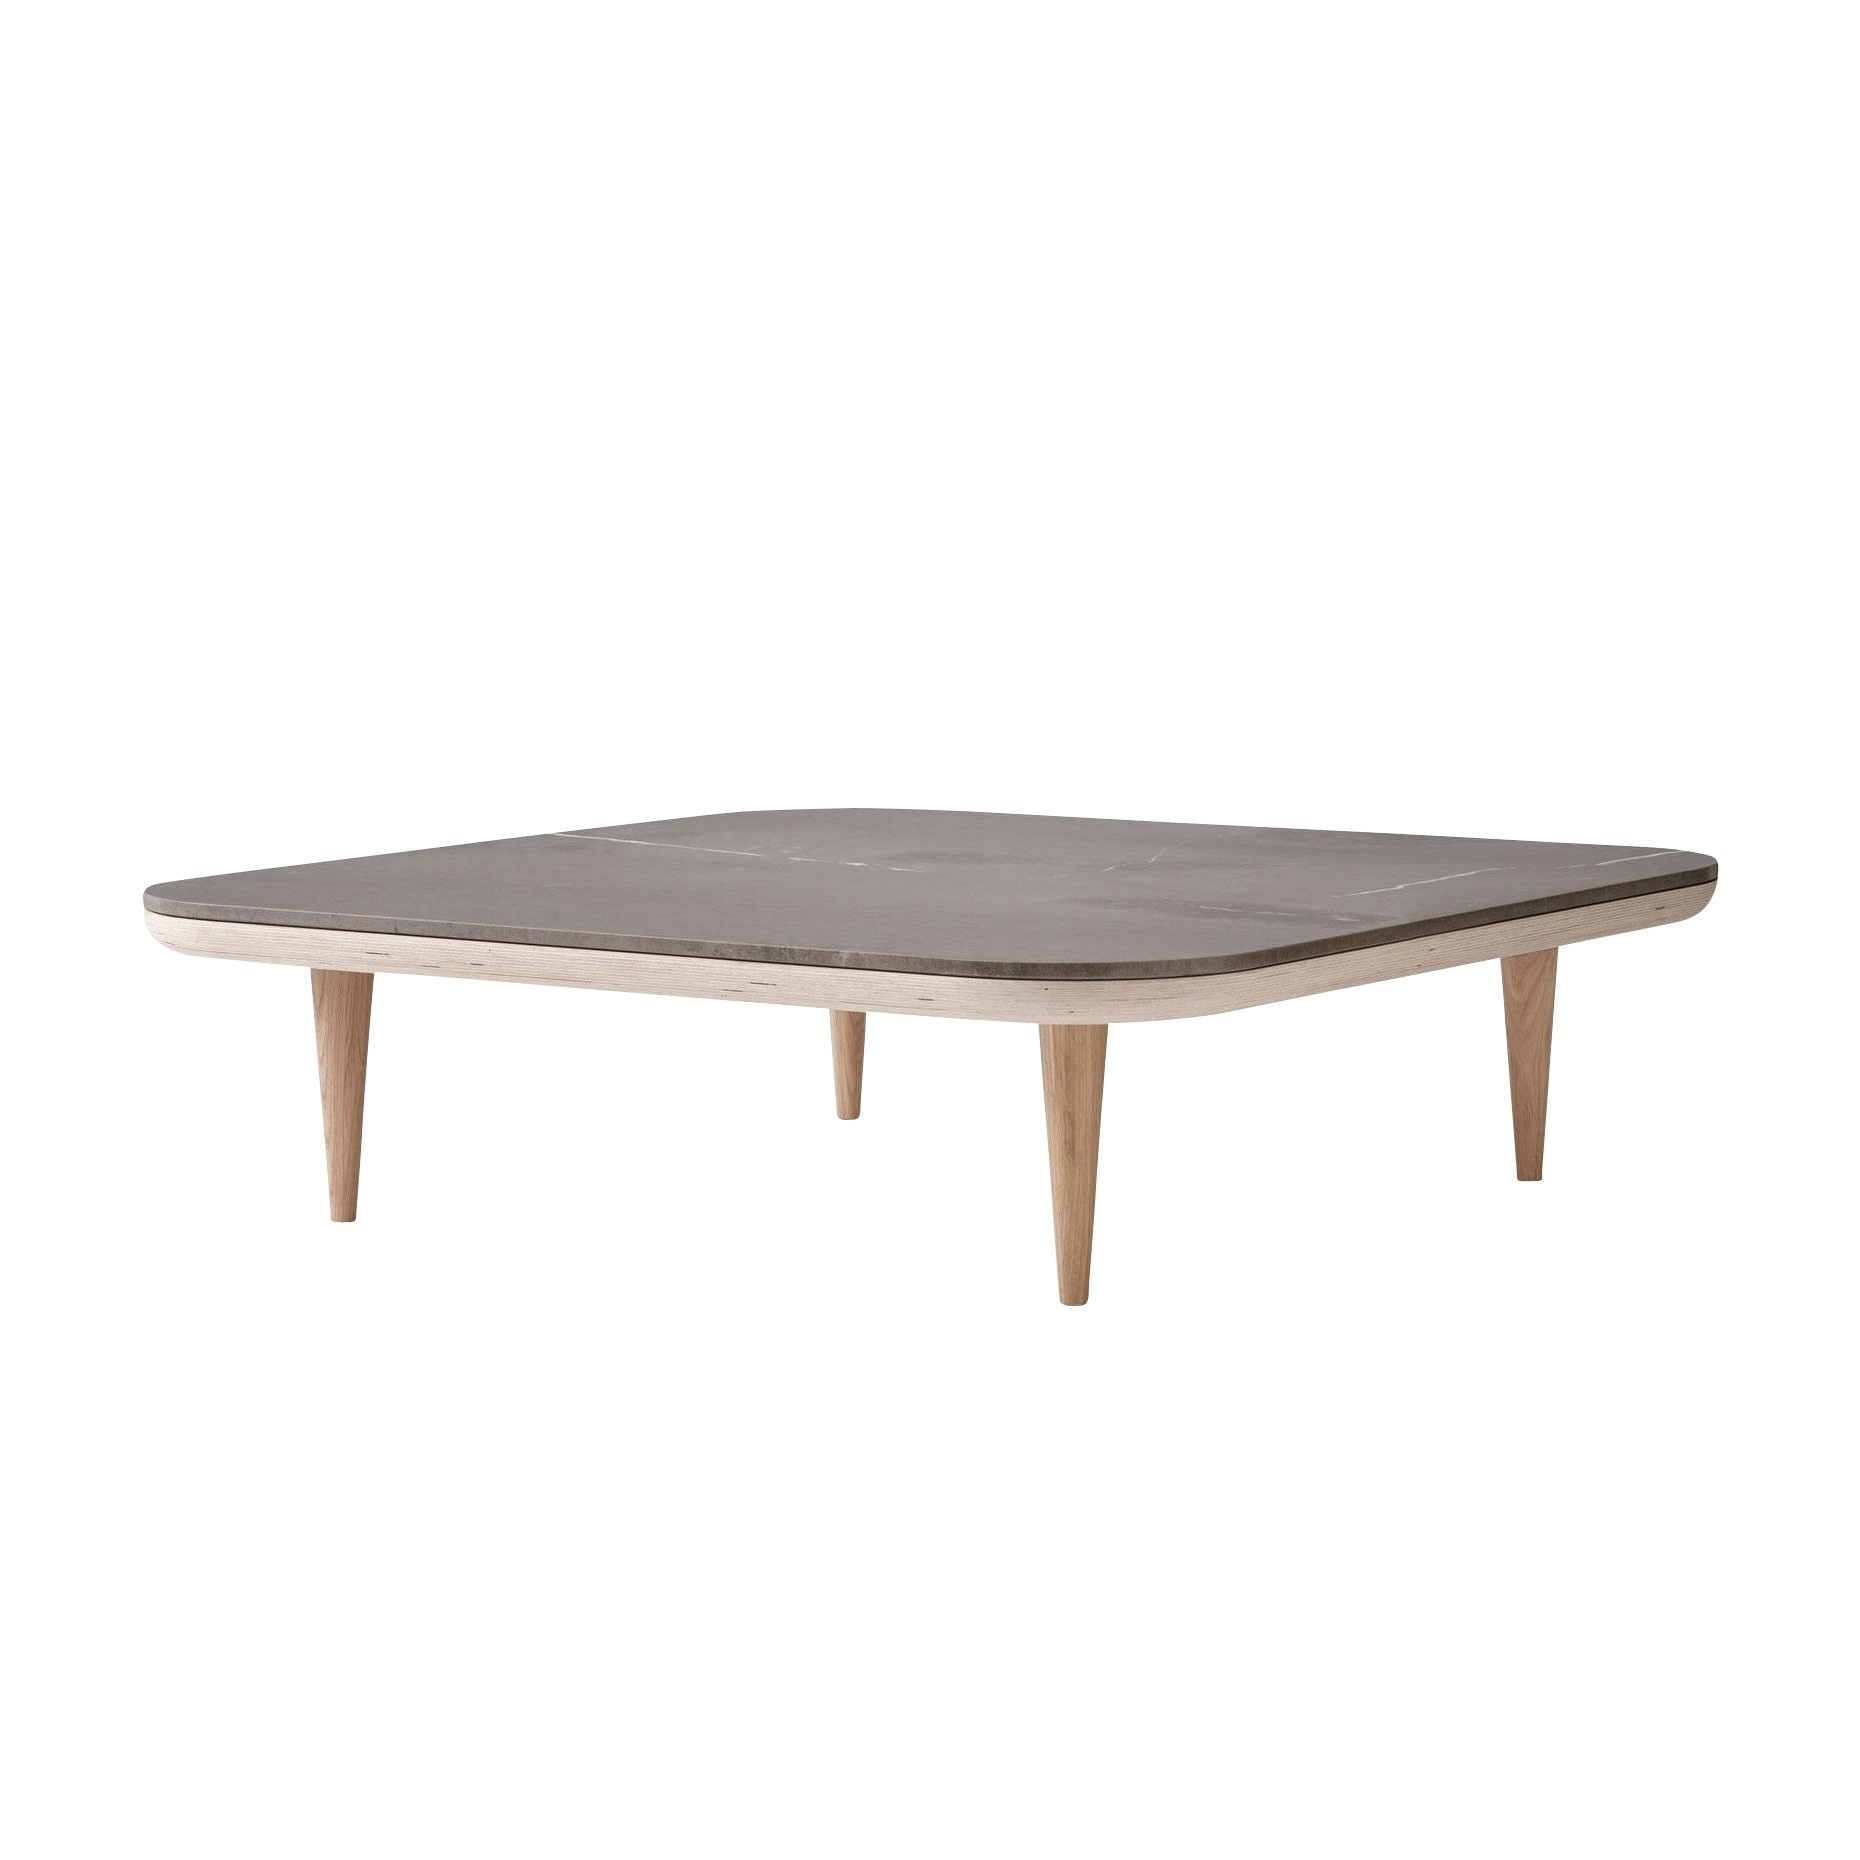 Linoleum Couchtisch Fly Table Sc11 Coffee Table 120x120cm